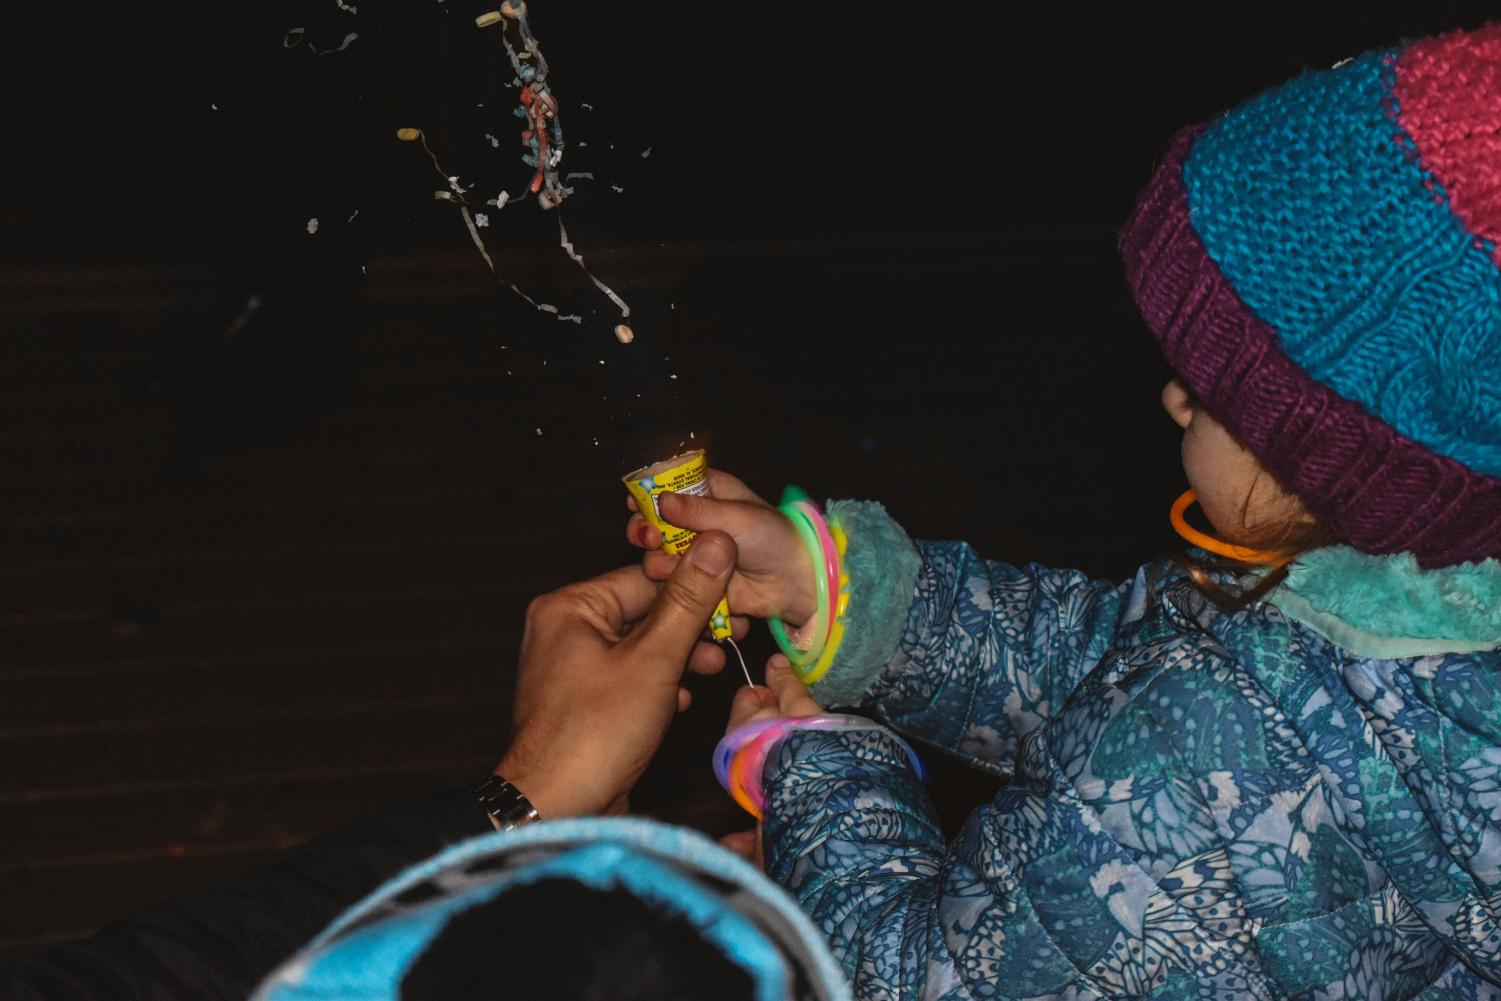 A child uses a party popper at midnight on New Year's Day 2019. As a college student, there are many options for a New Year's resolution to make the most of your college experience.